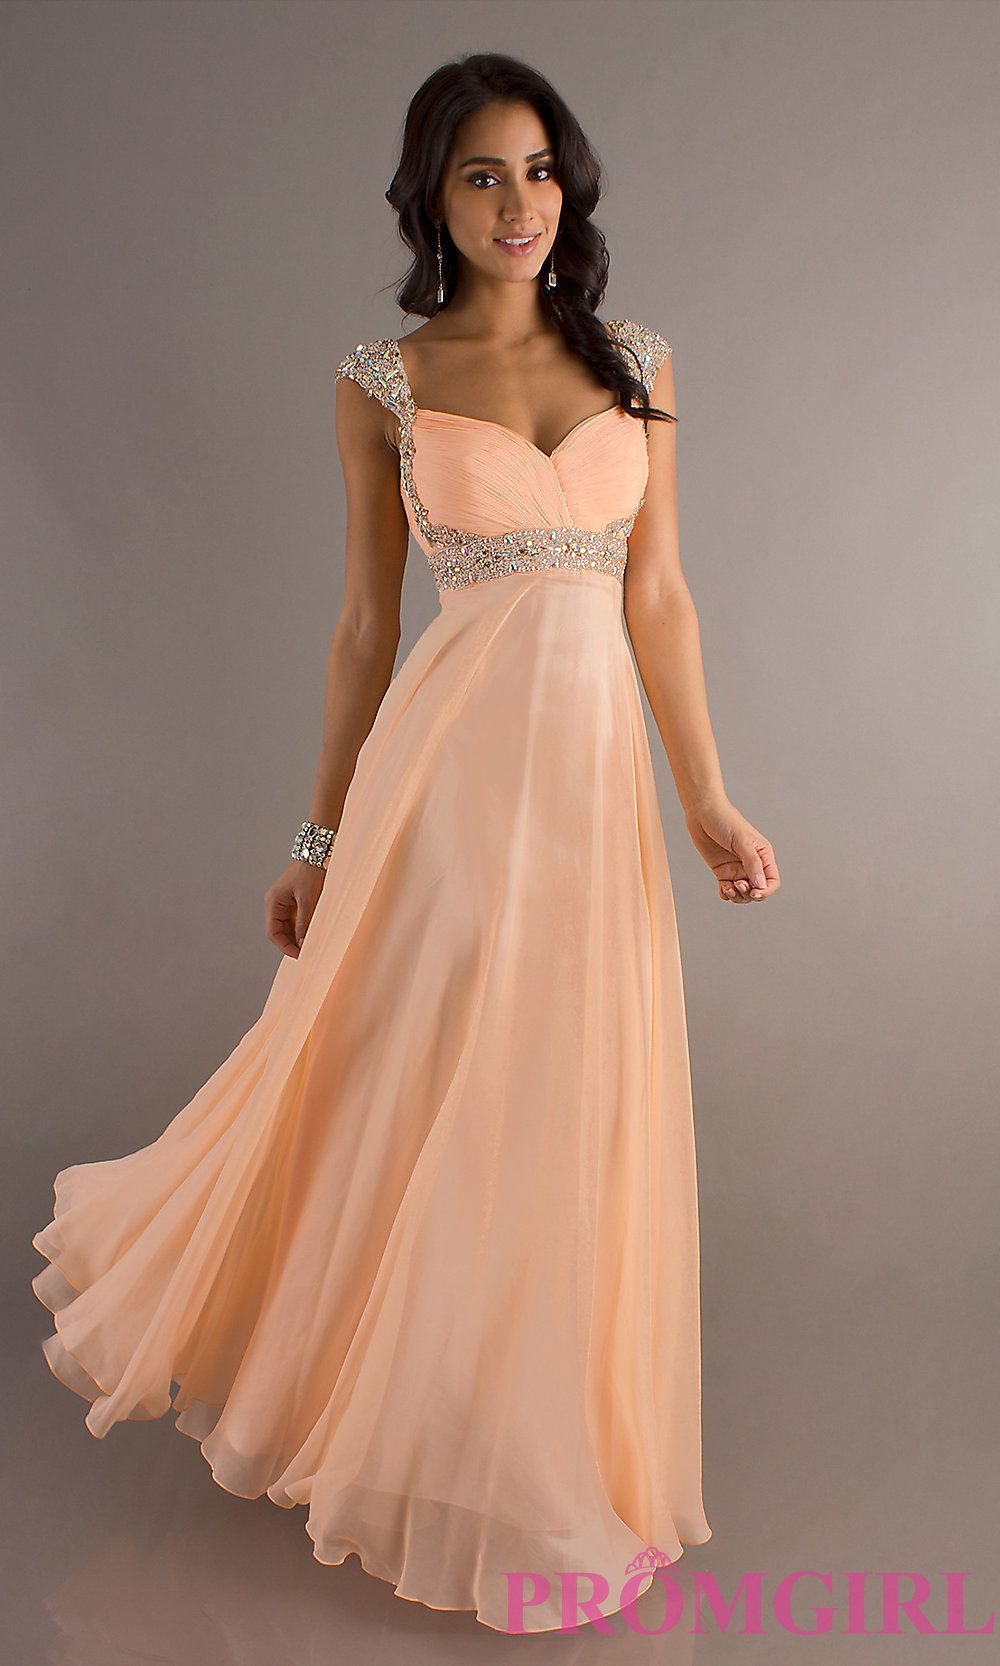 Long Dave and Johnny Cap-Sleeve Peach Prom Dress   Long prom ...